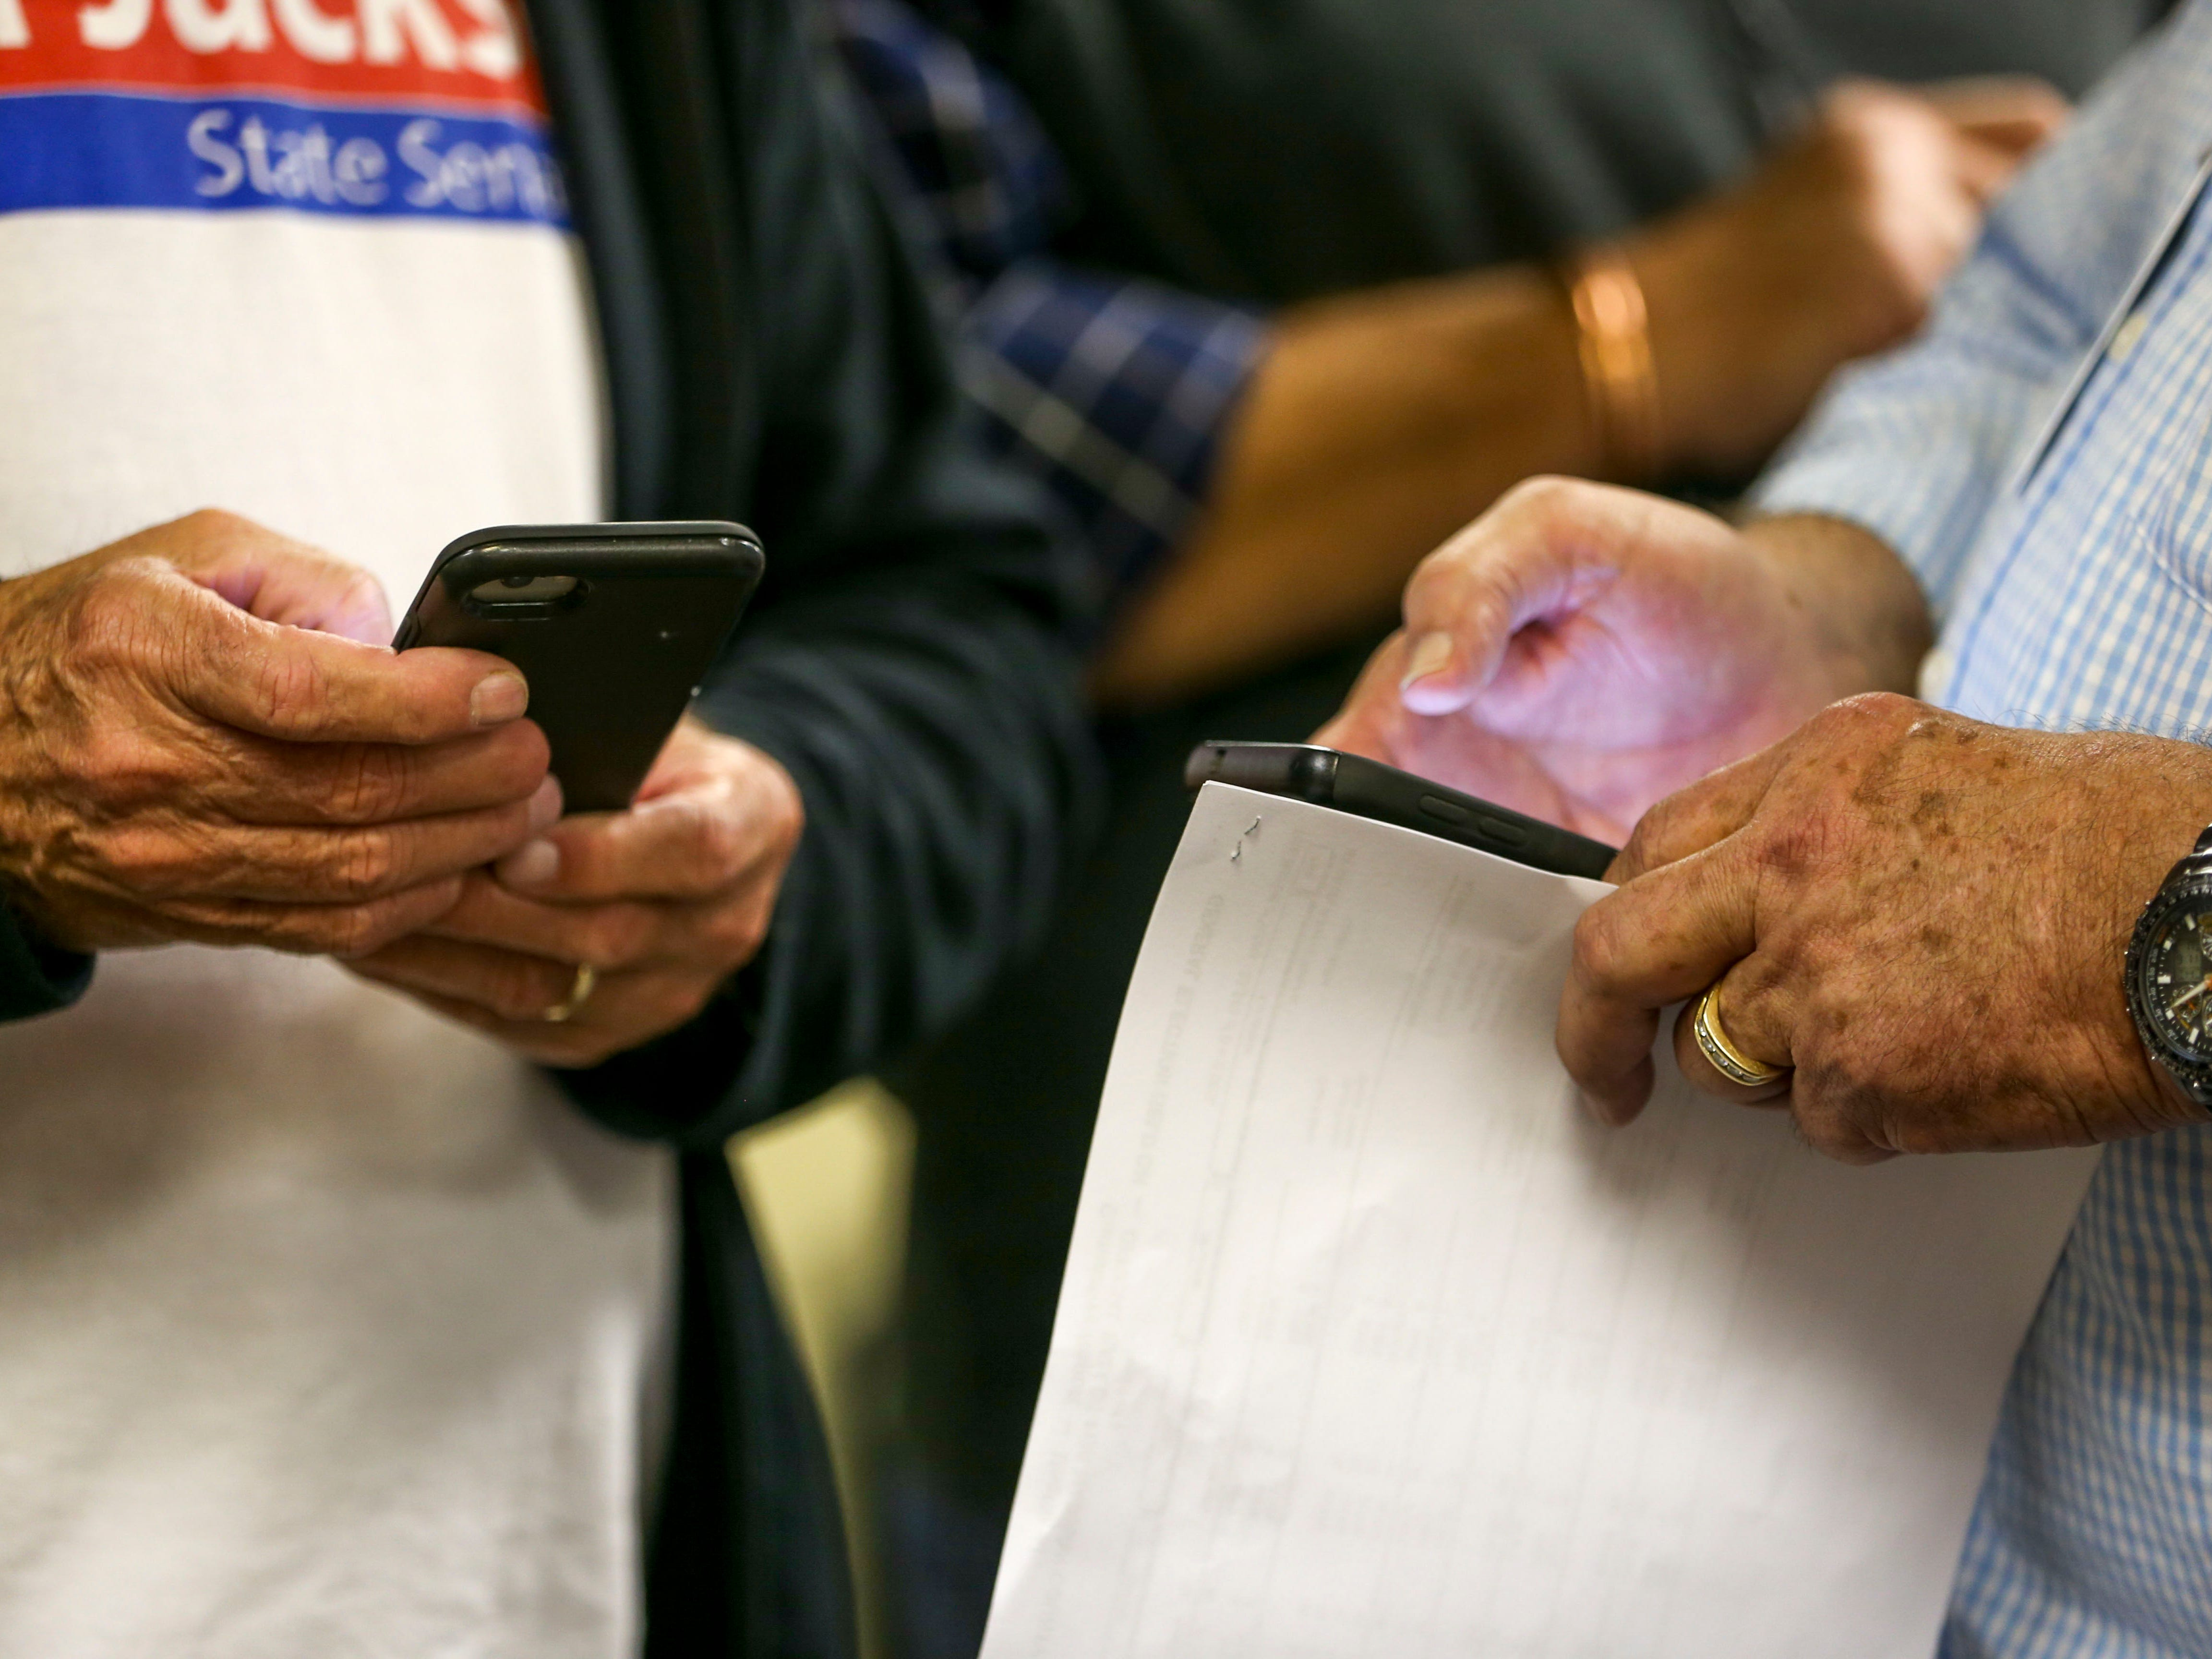 Attendees check their cell phones for election result coverage during an election night watch party at Madison County Republican Headquarters in Jackson, Tenn., on Tuesday, Nov. 6, 2018.